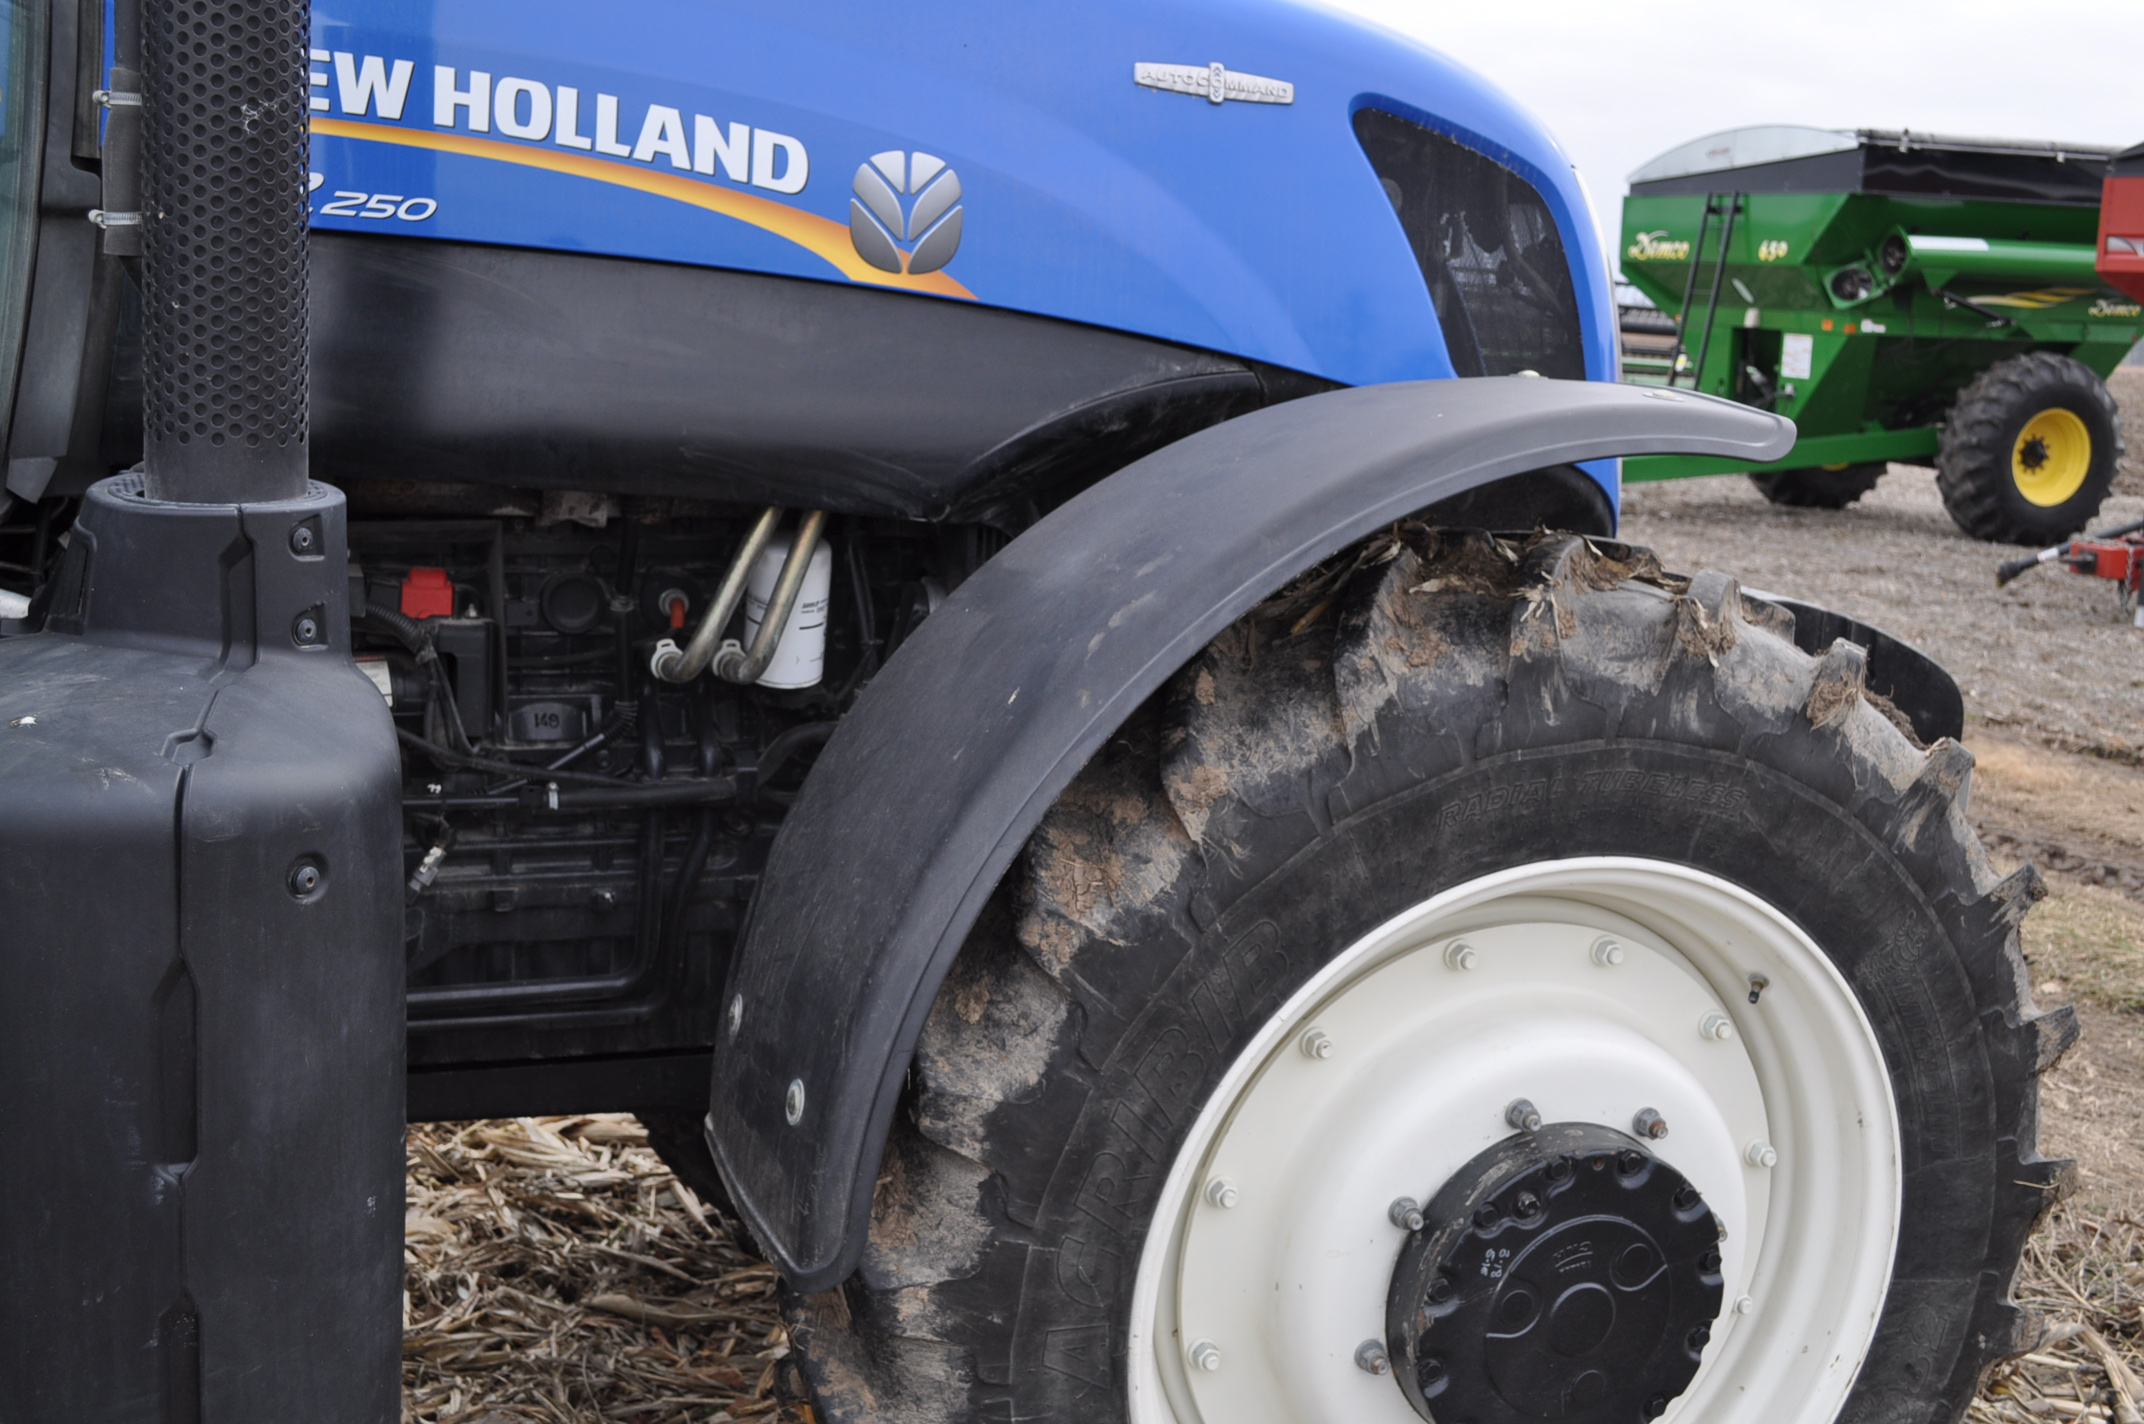 New Holland T7.250 tractor, 480/80 R 46 duals, Michelin 380/85 R 34 front, Super Steer, front wts, - Image 14 of 28